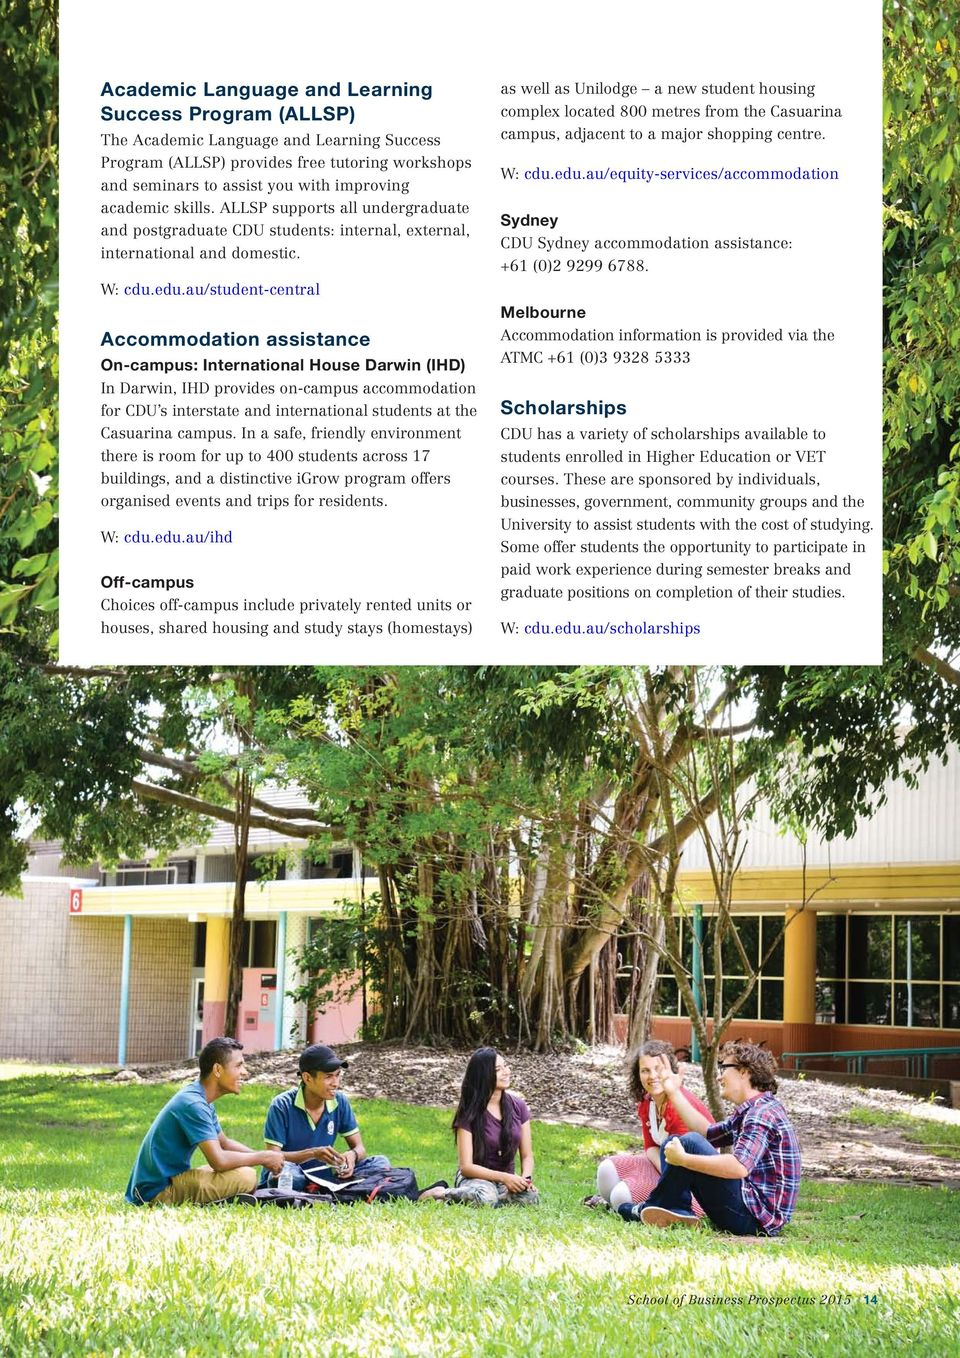 au/student-central Accommodation assistance On-campus: International House Darwin (IHD) In Darwin, IHD provides on-campus accommodation for CDU s interstate and international students at the